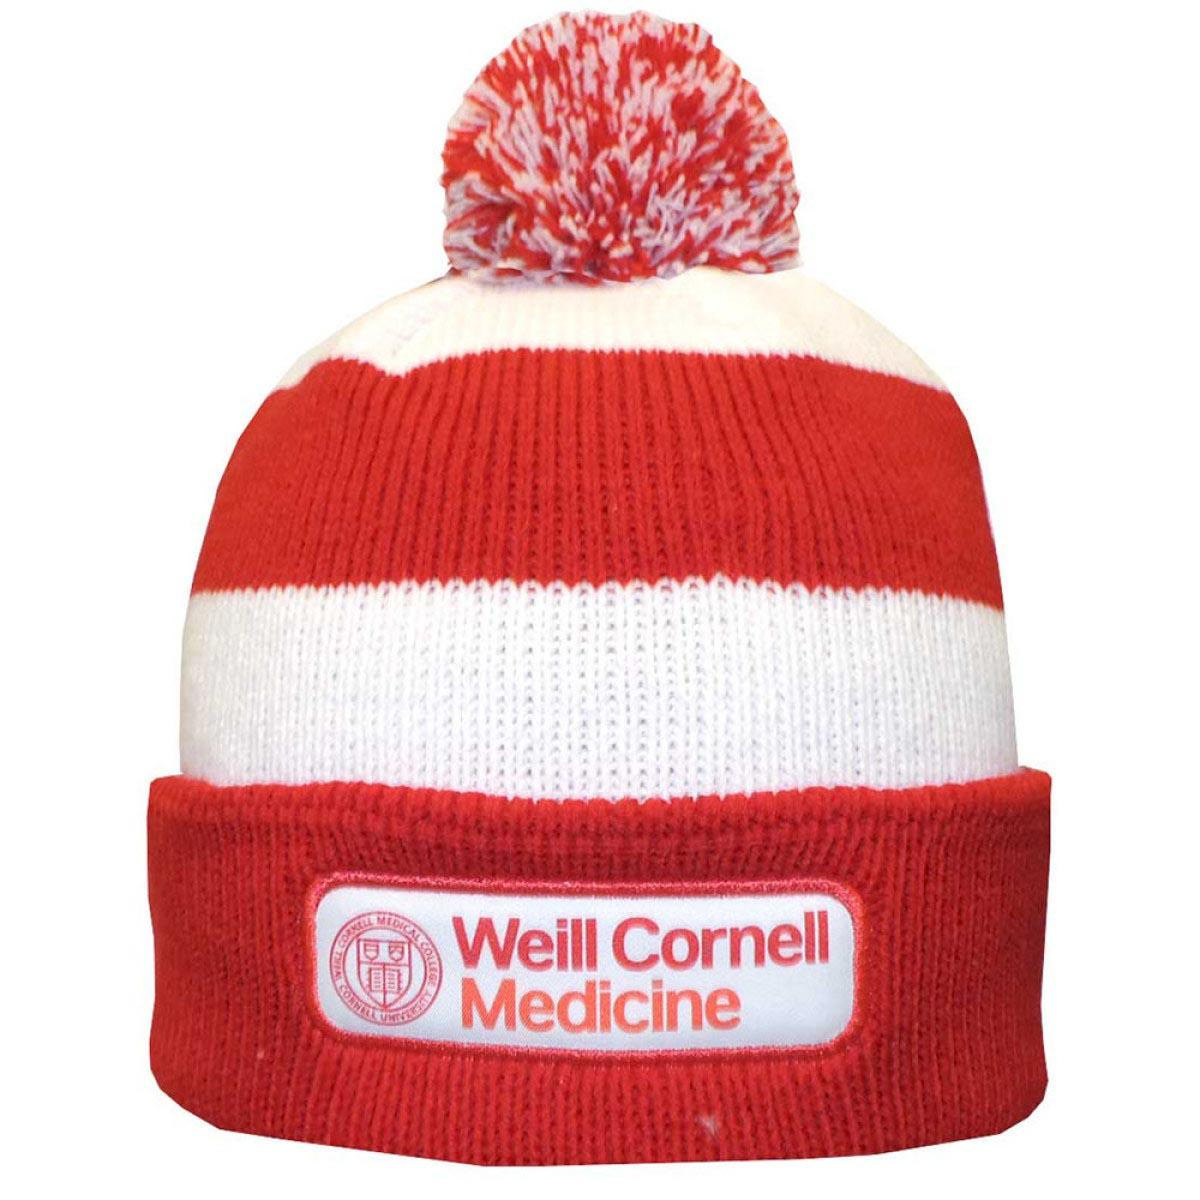 ce1666d483a Weill Cornell Medicine Rugby Knit Hat - Red And White